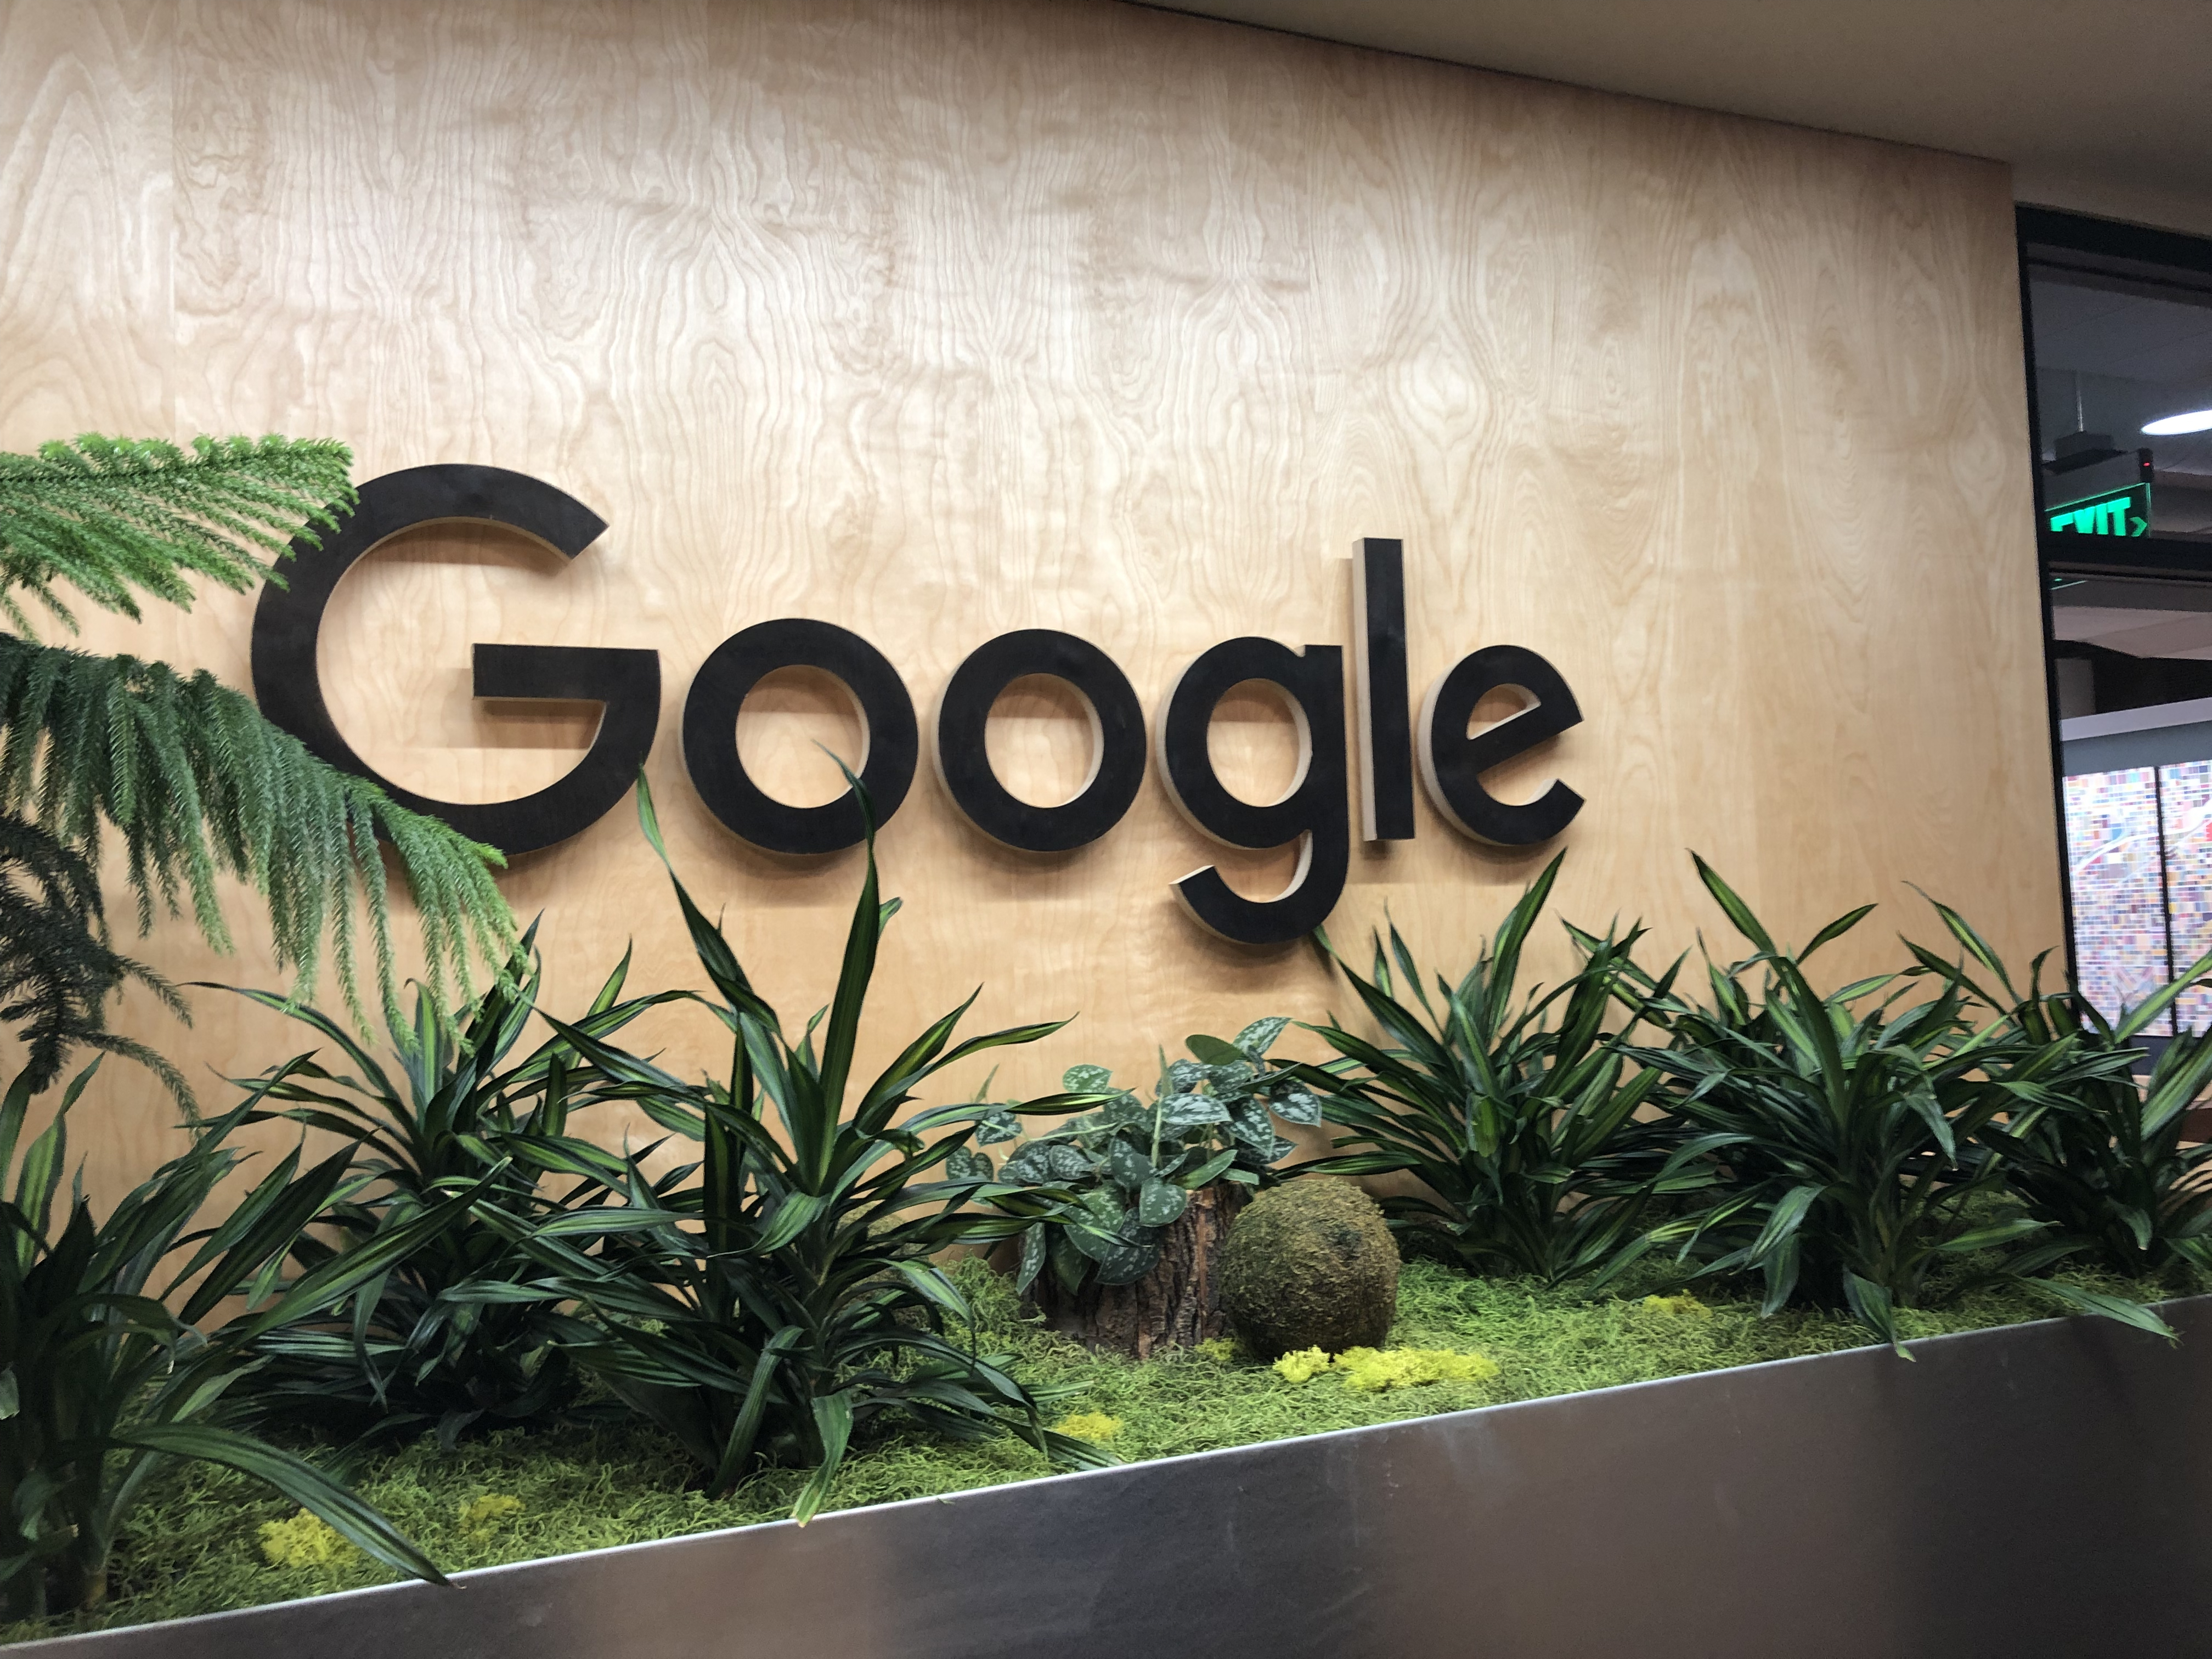 Google's Portland office tests small business initiative